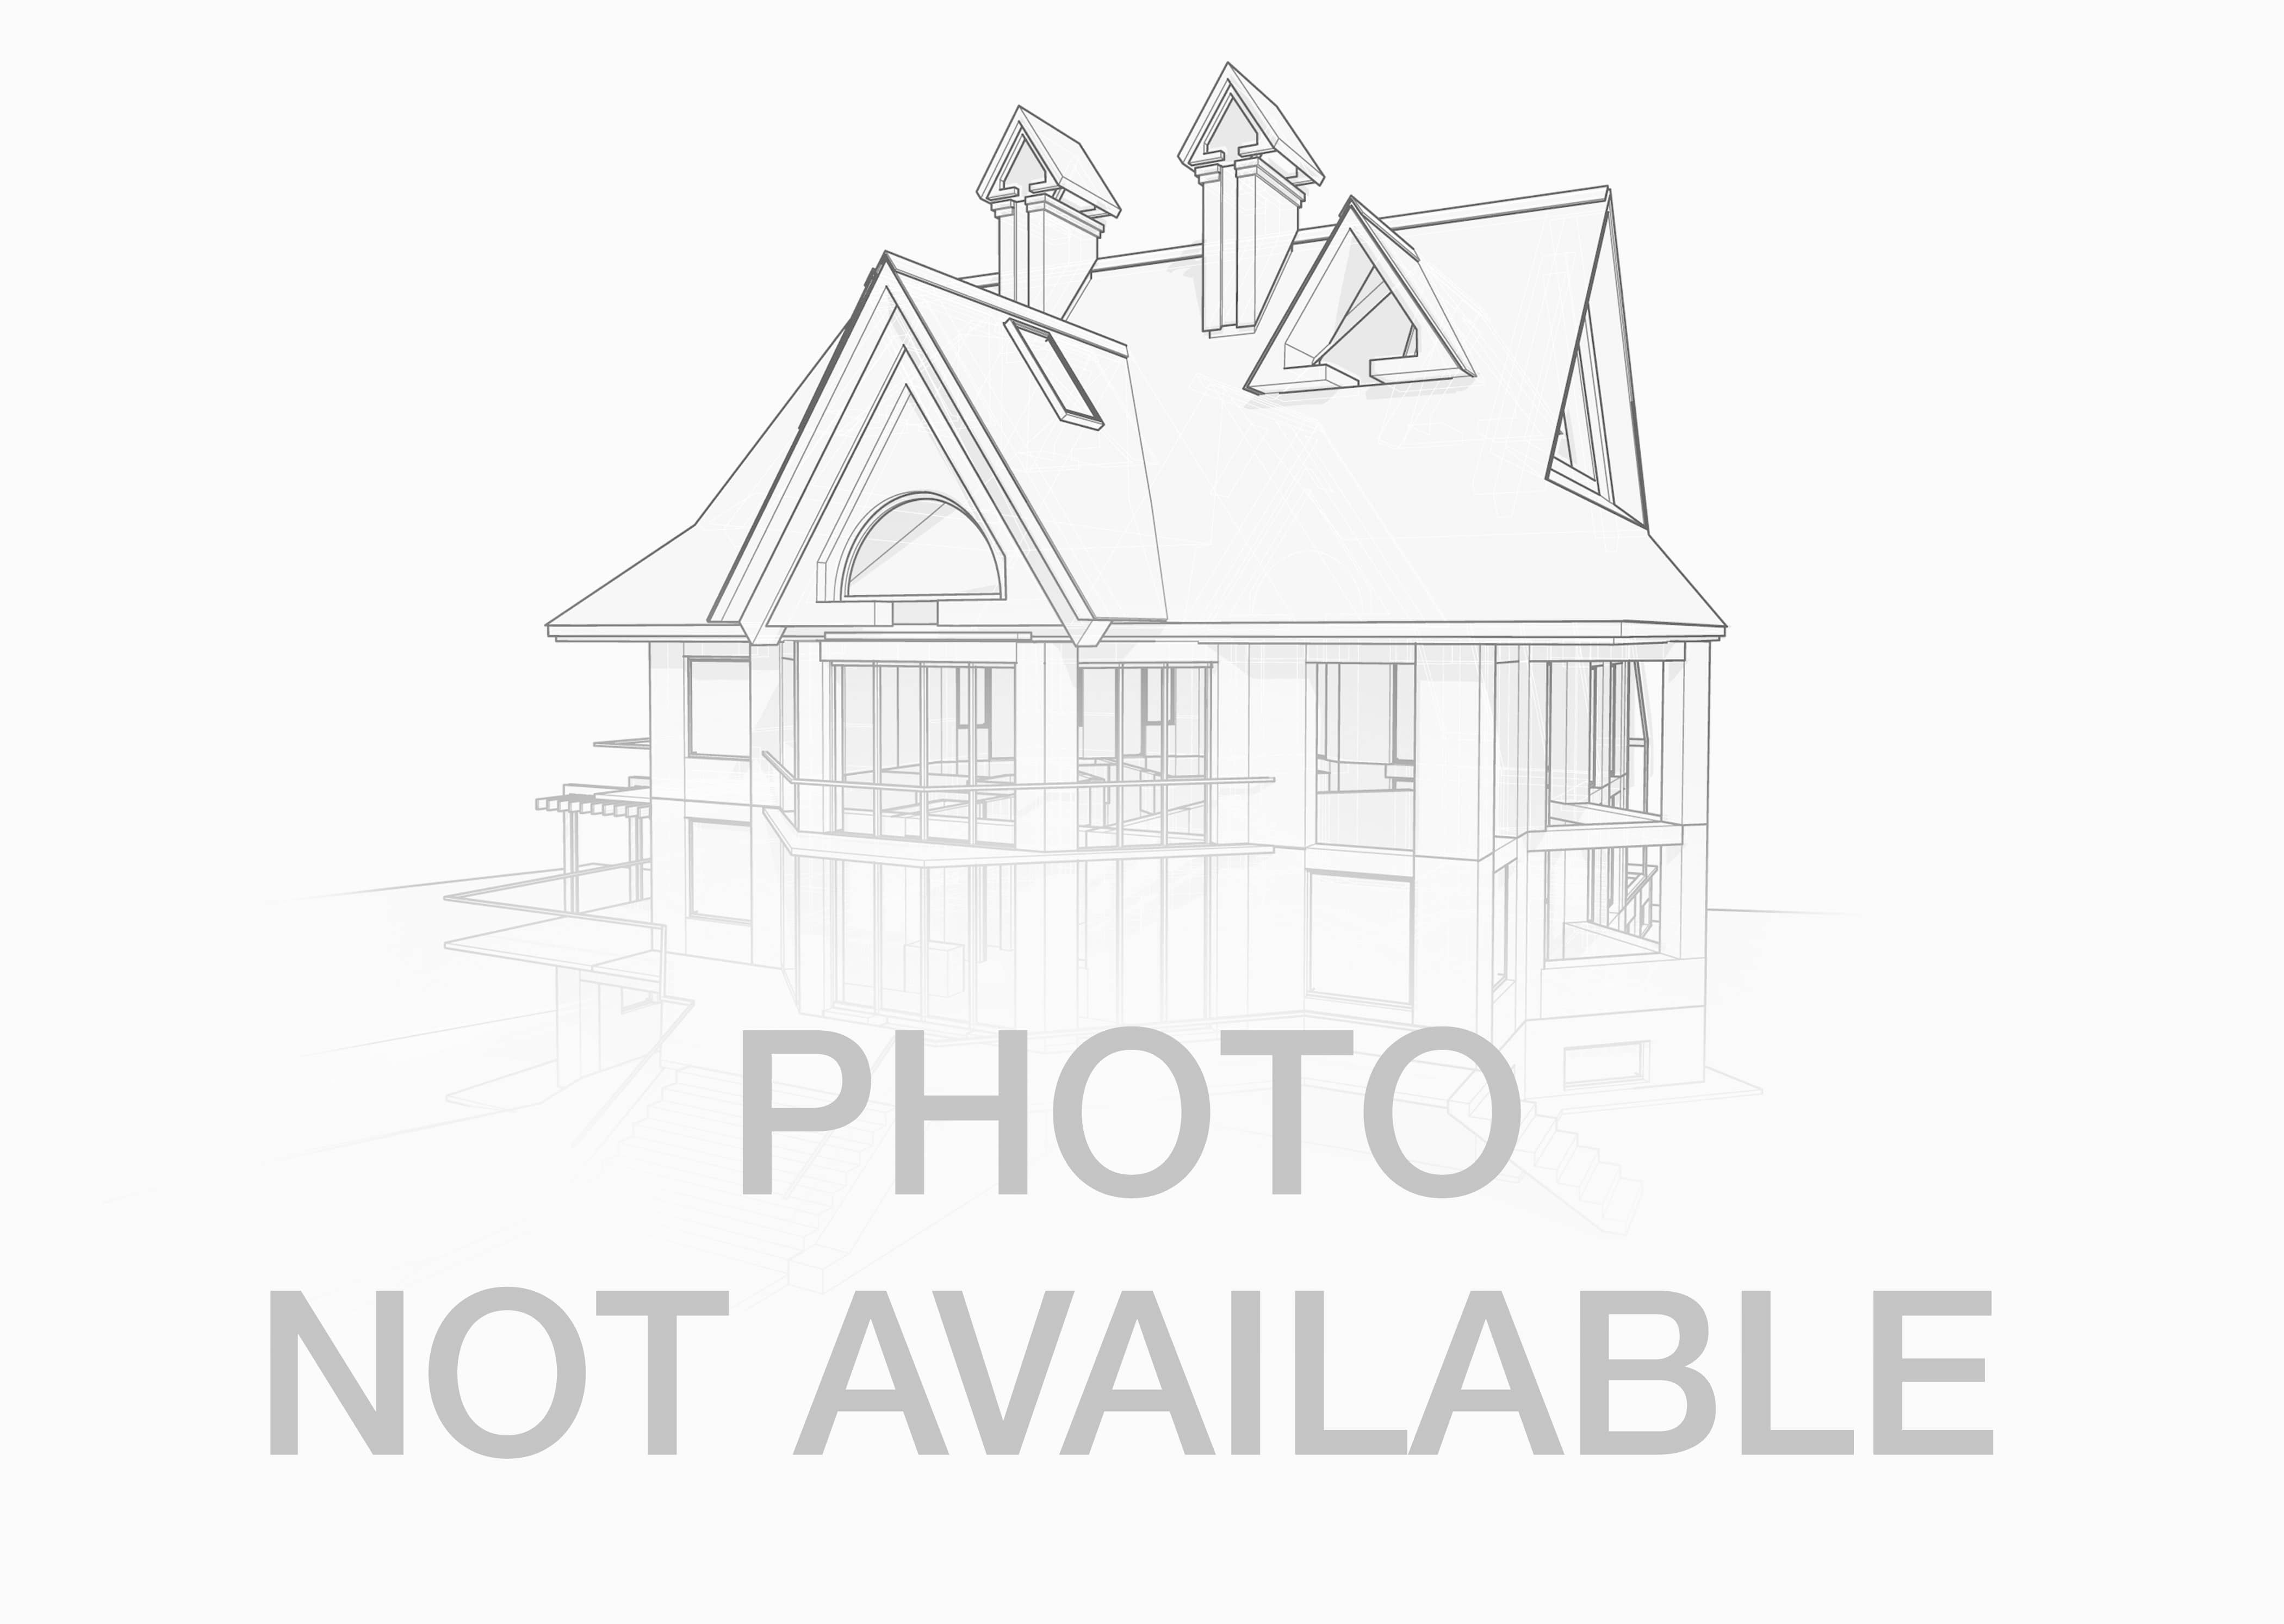 Homes For Sale In The Farms Mooresville Nc